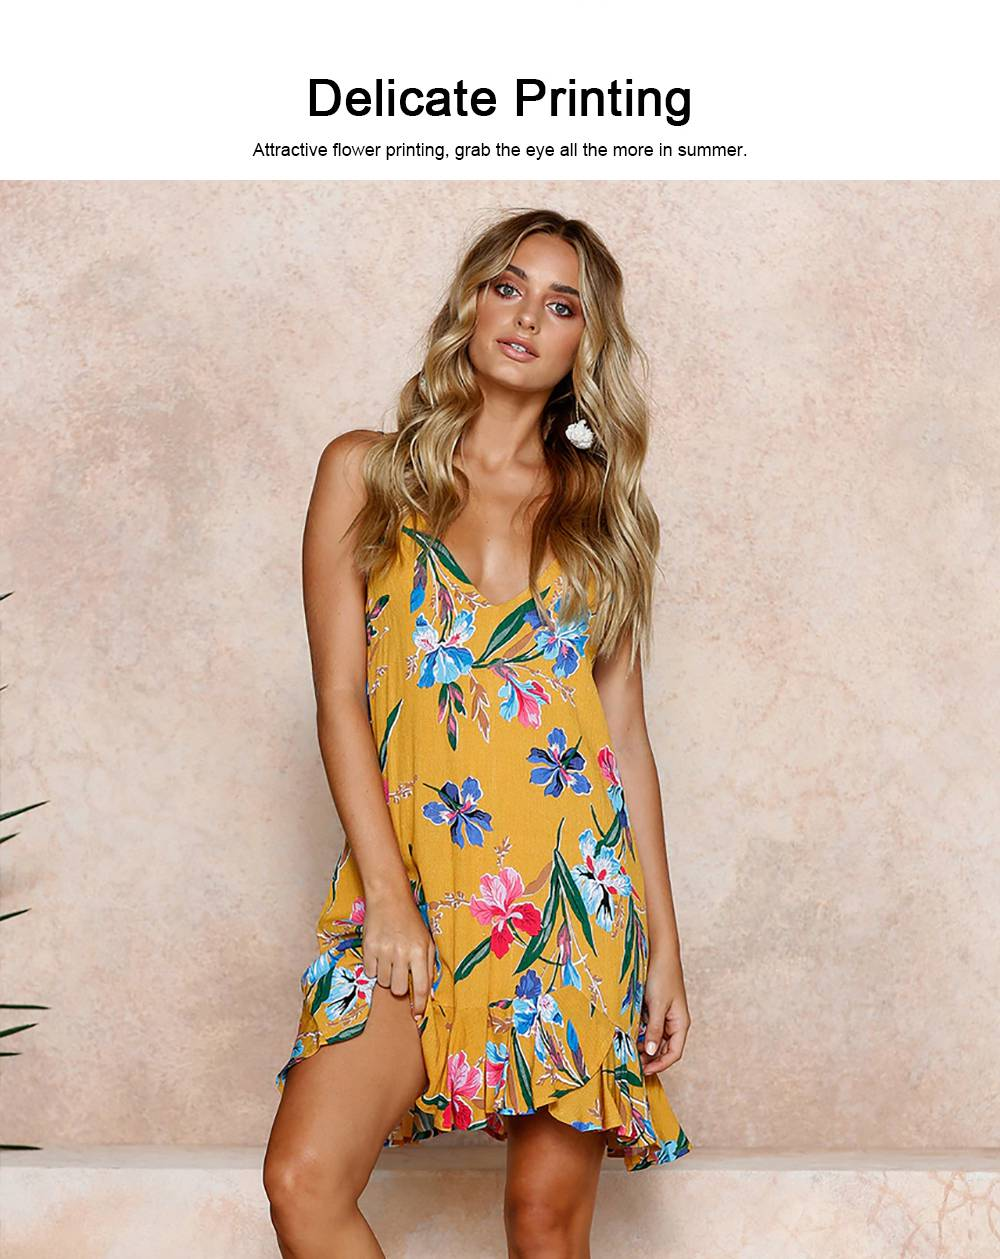 2019 Printed Dresses for Women, Women's Sleeveless Bohemian Strappy Skirt for Ladies 3